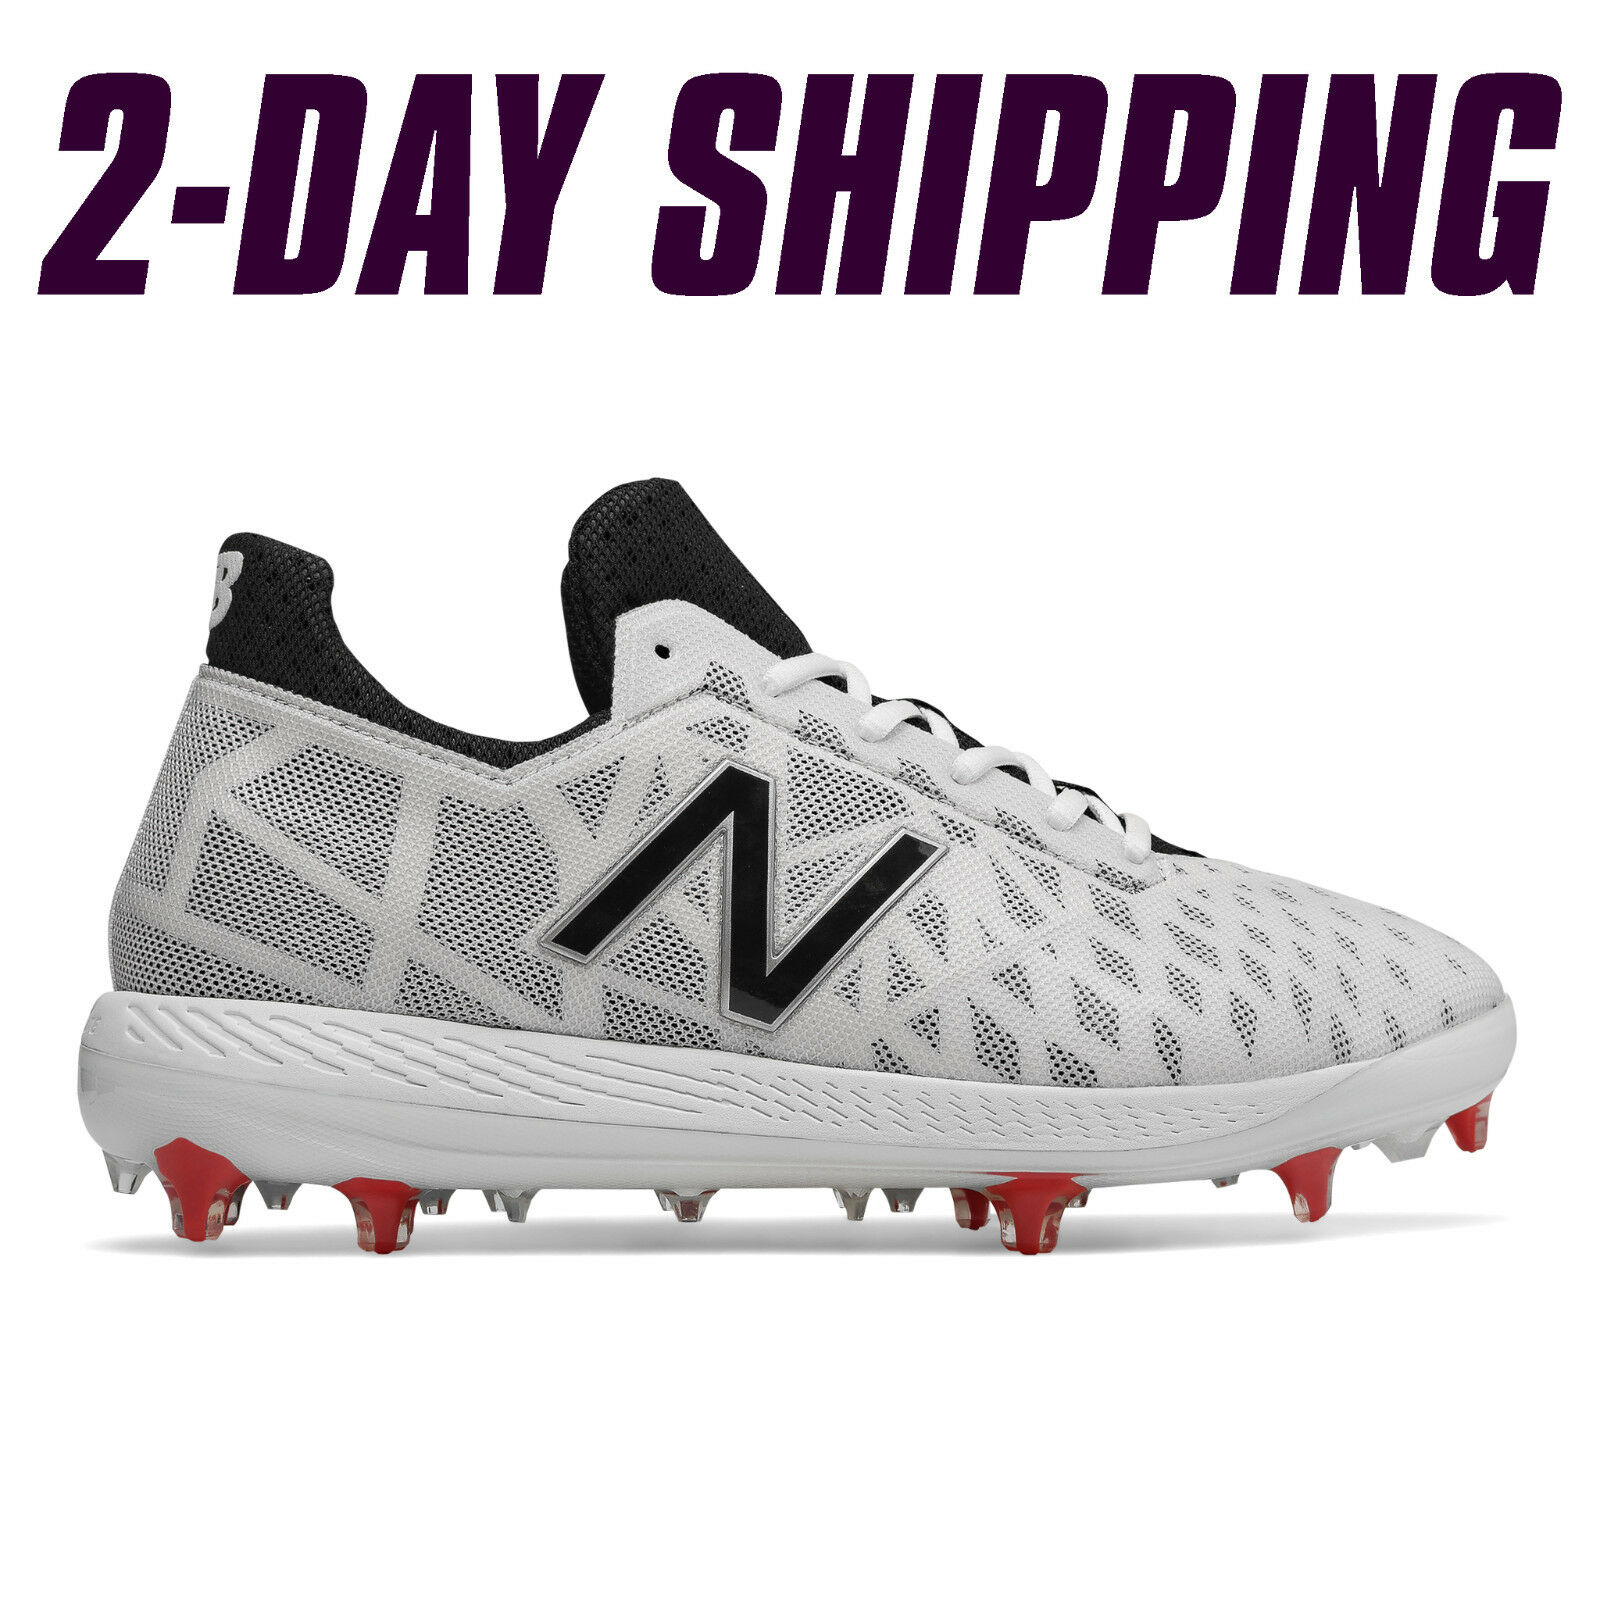 Nuovo Balance Baseball Low-Cut COMPv1 *2DAY Comp Cleats bianca -COMPTW1 *2DAY COMPv1 SHIP* 40752a